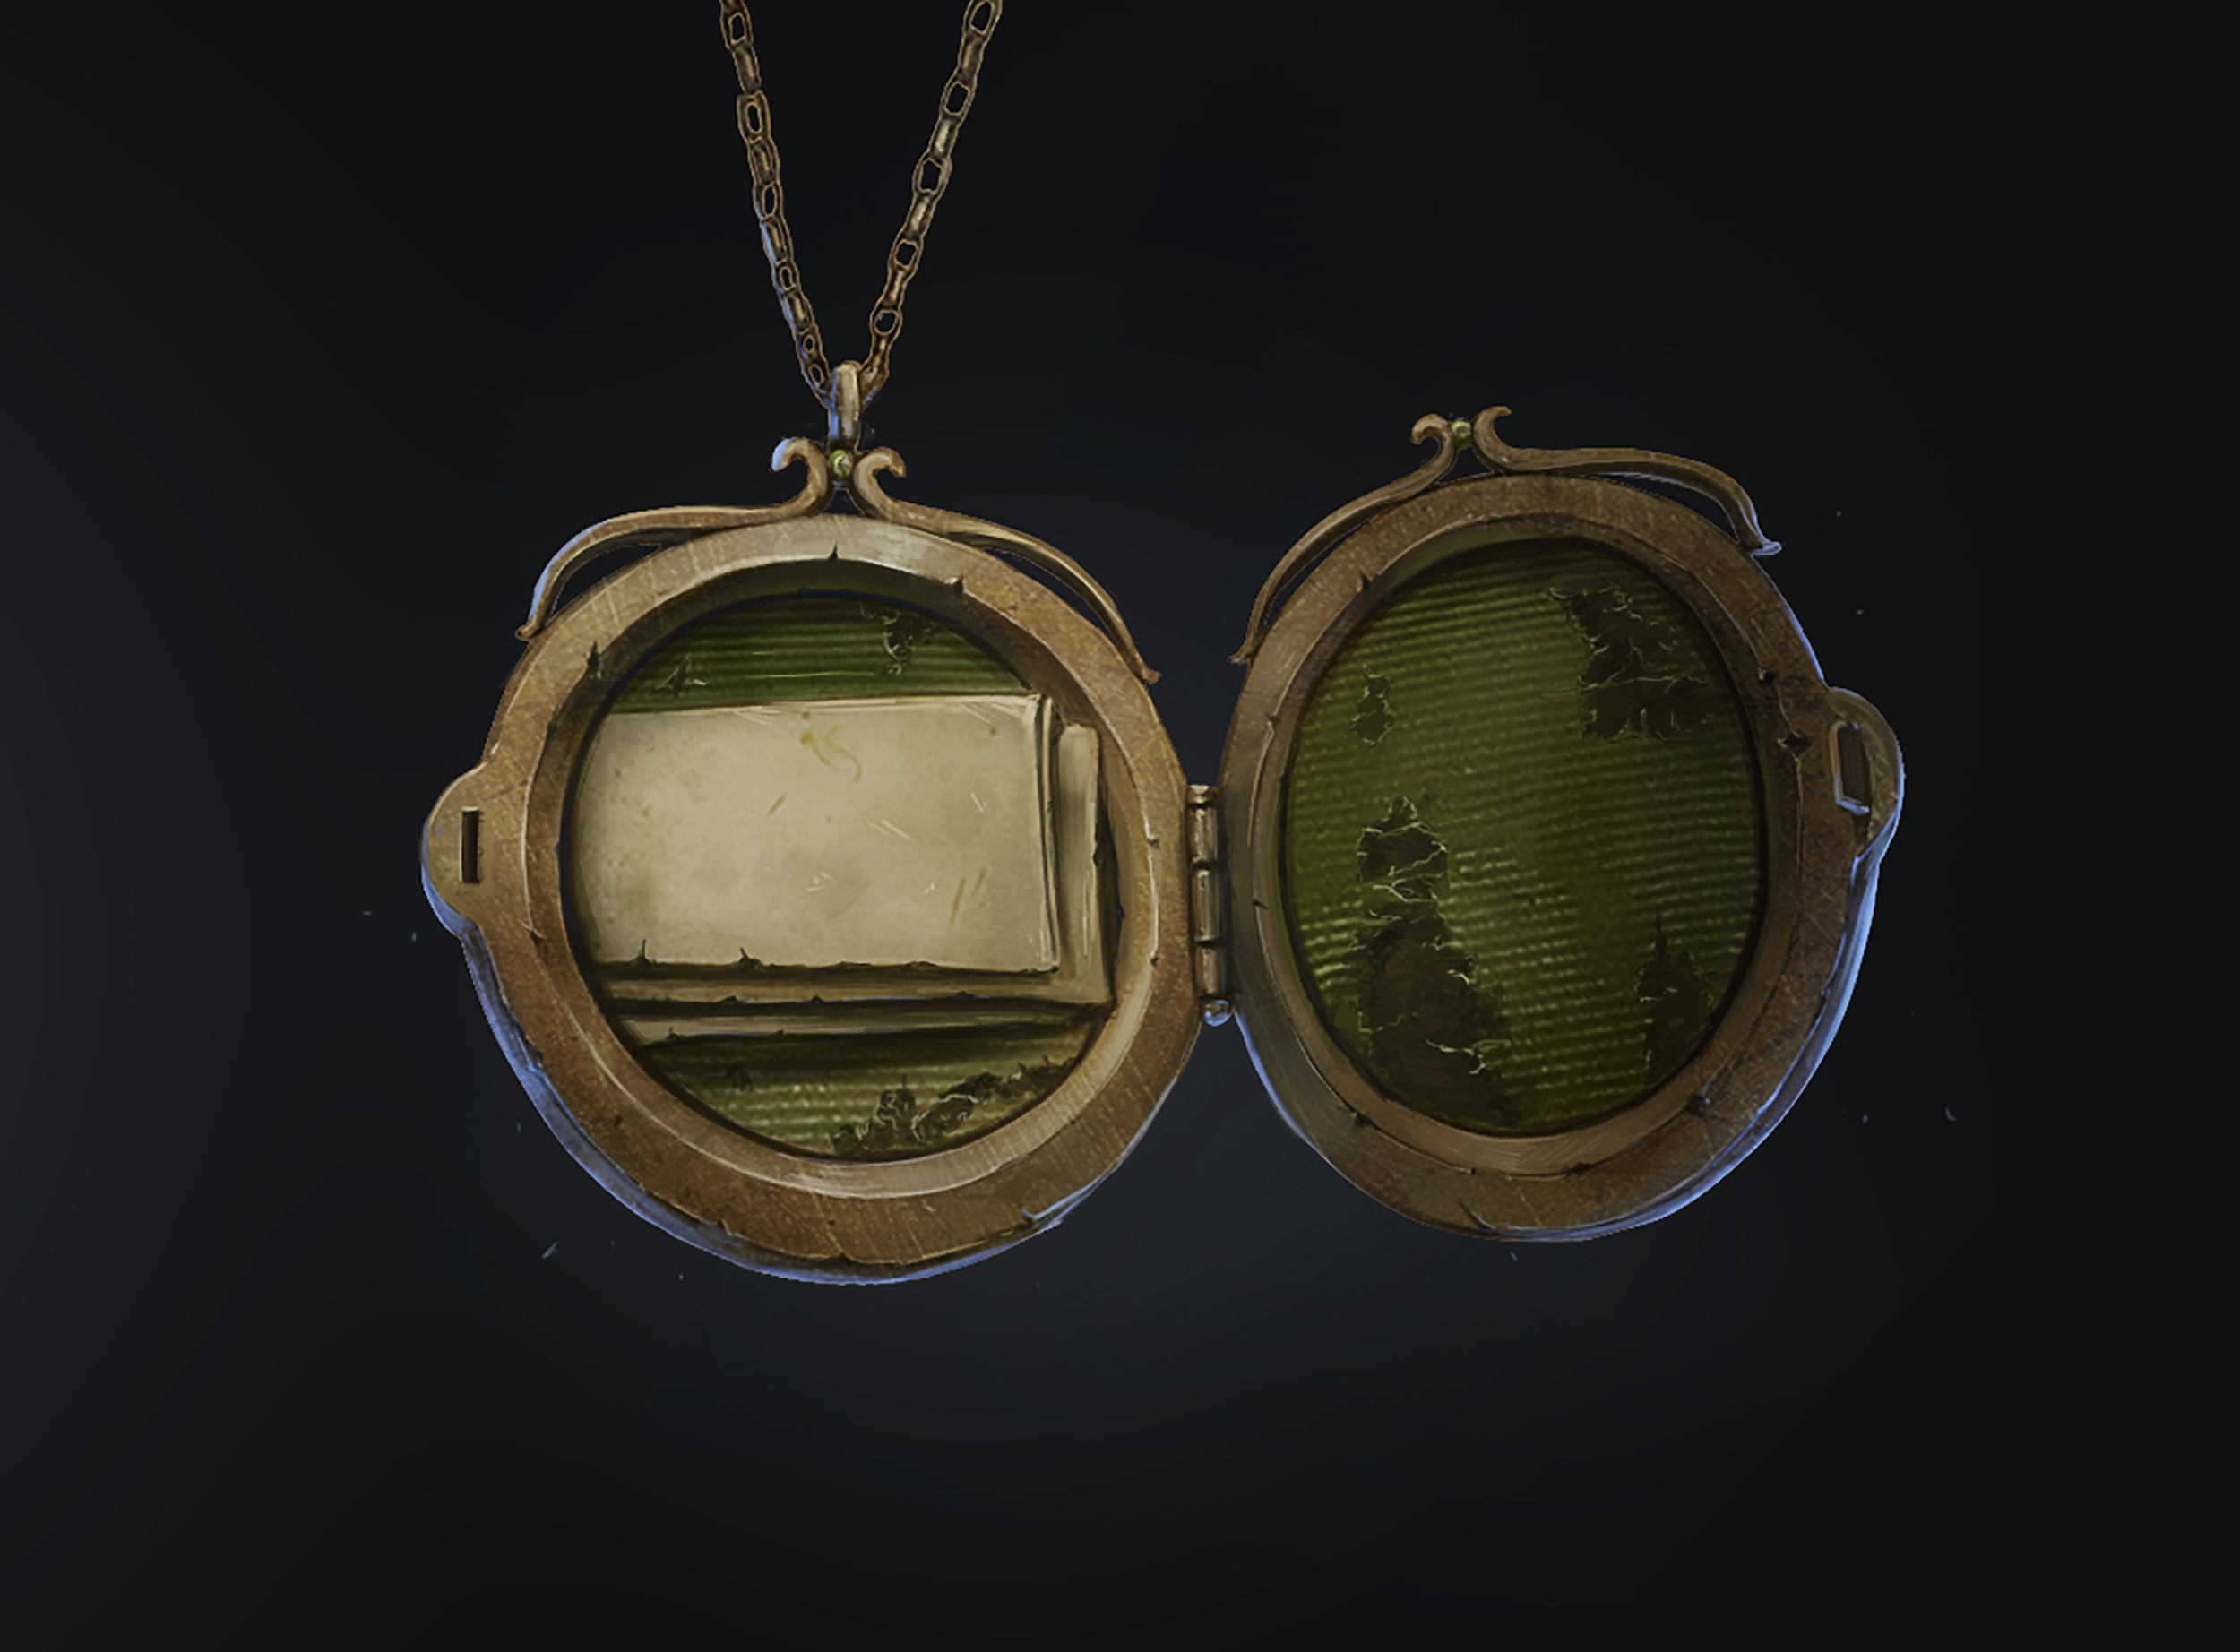 Illustration of Voldemort's locket Horcrux